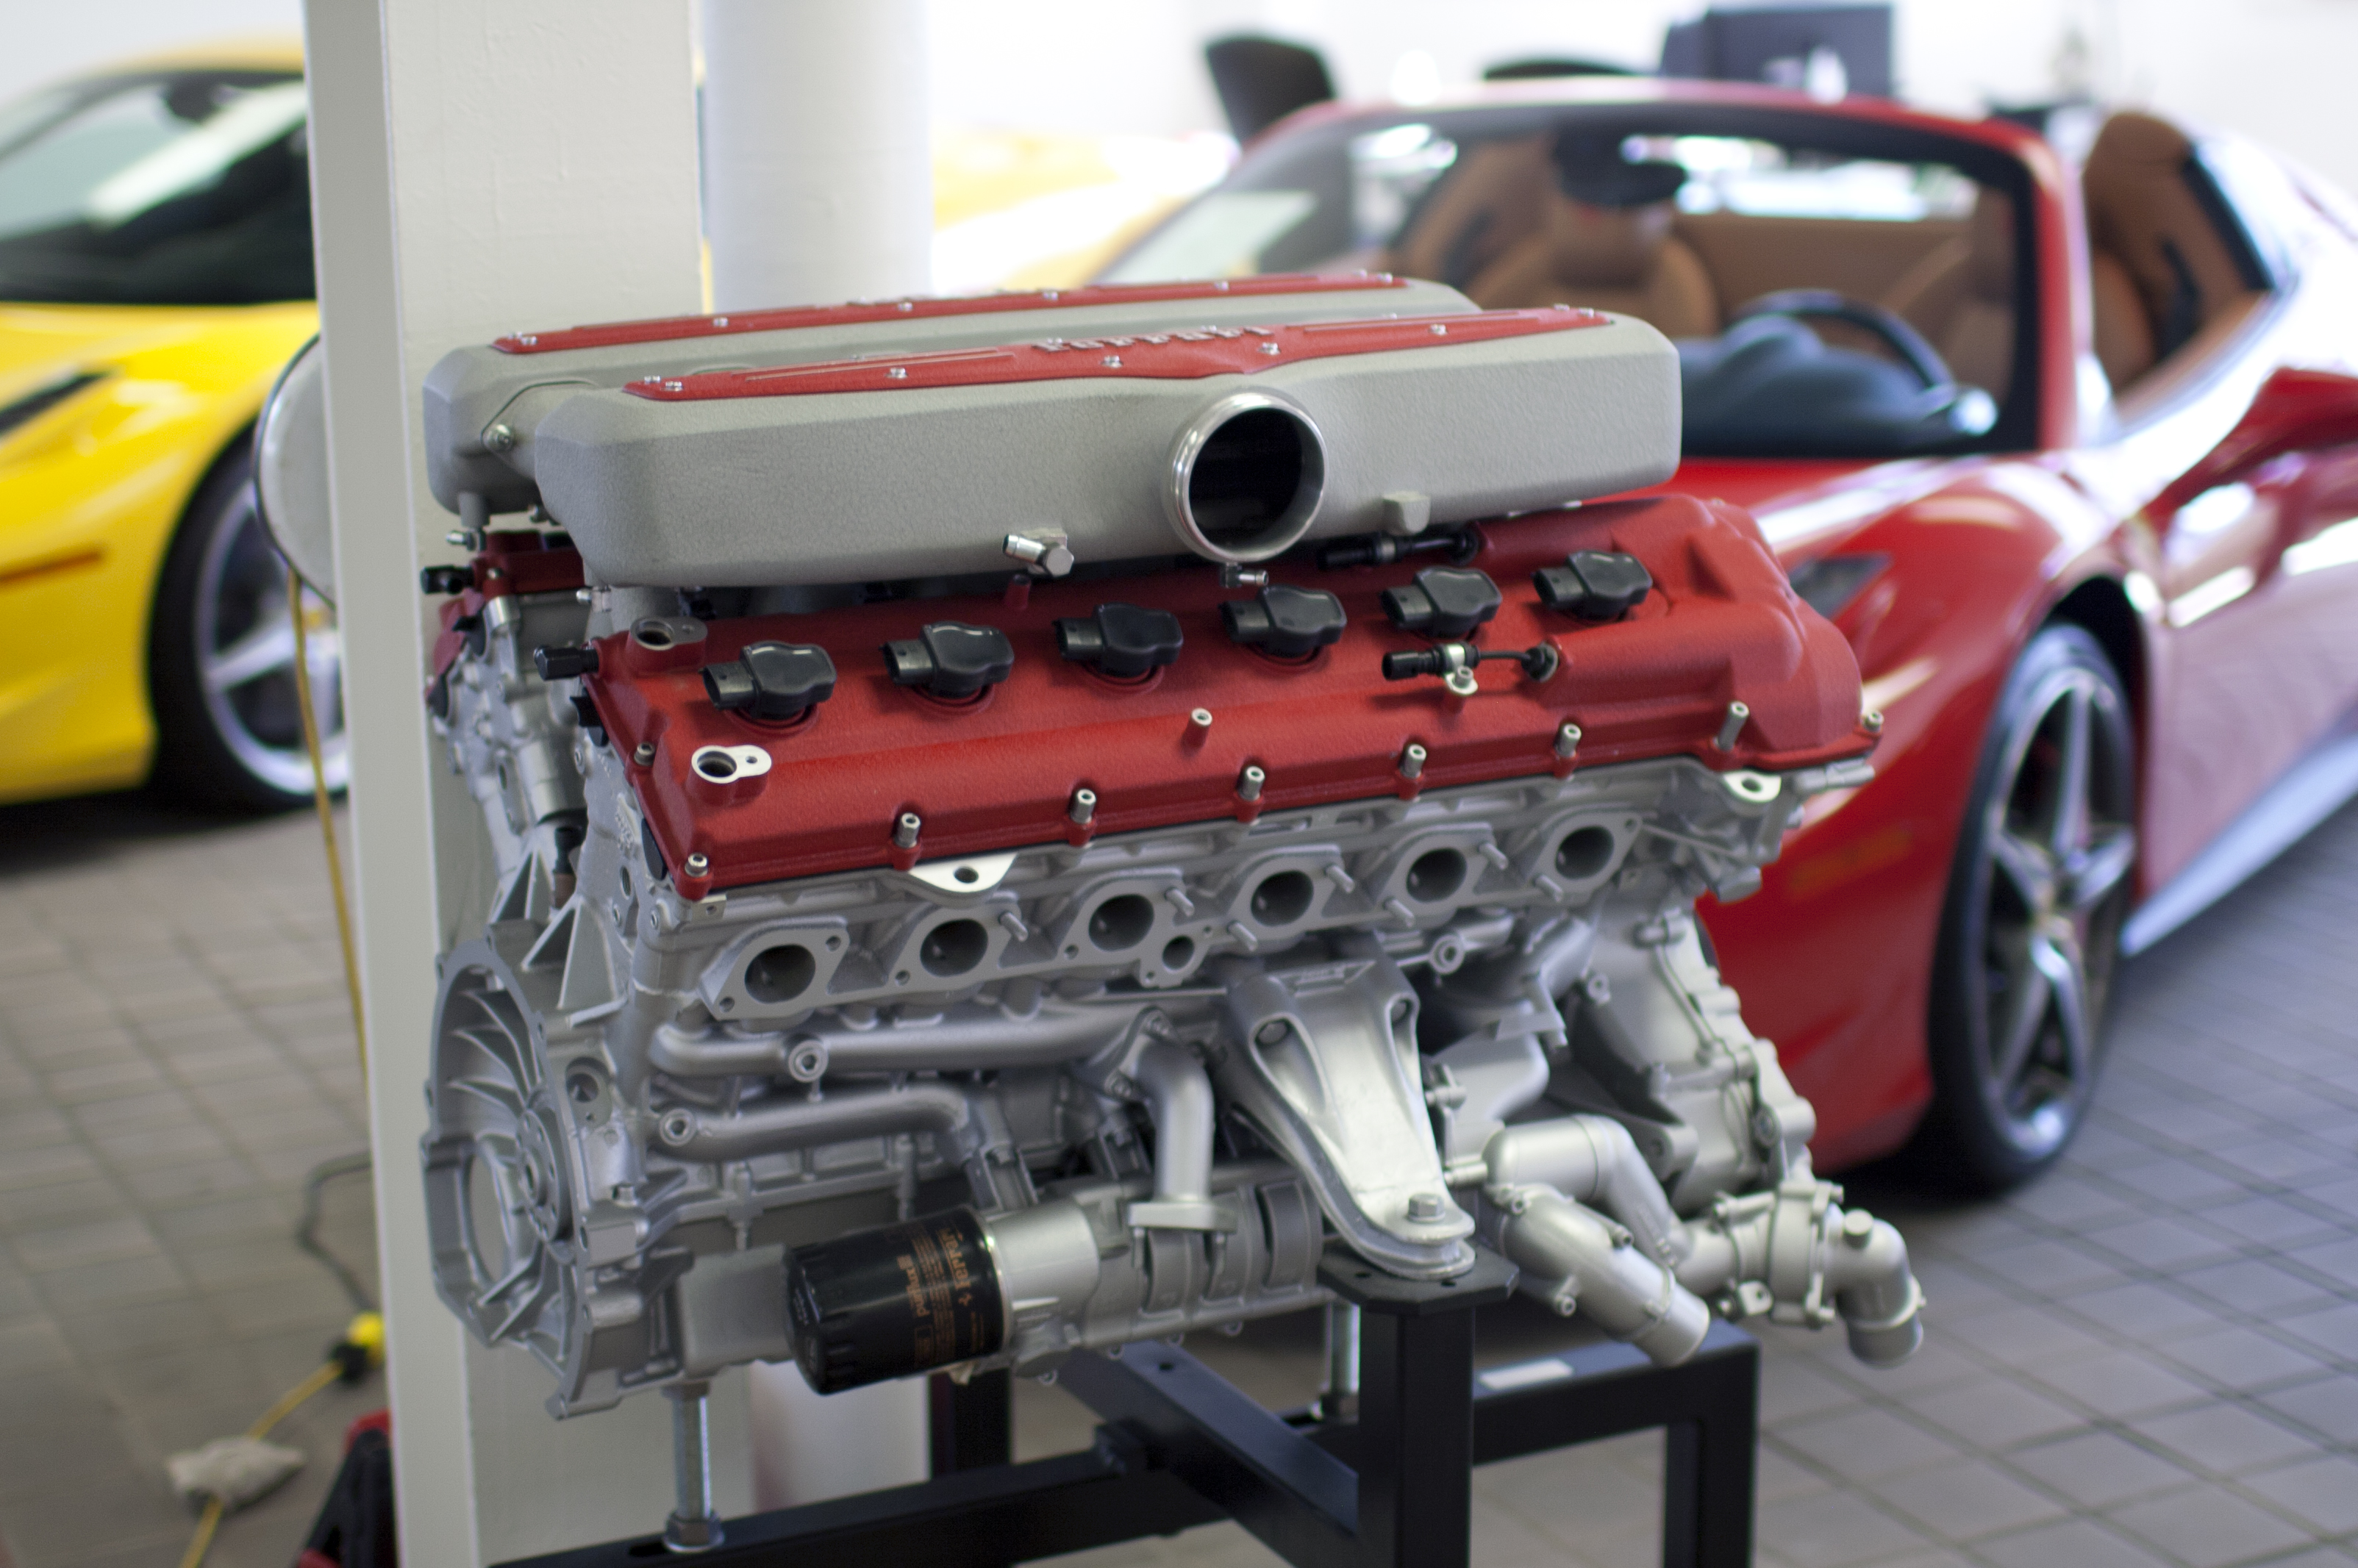 Ferrari 599xx Engine - Engine Information